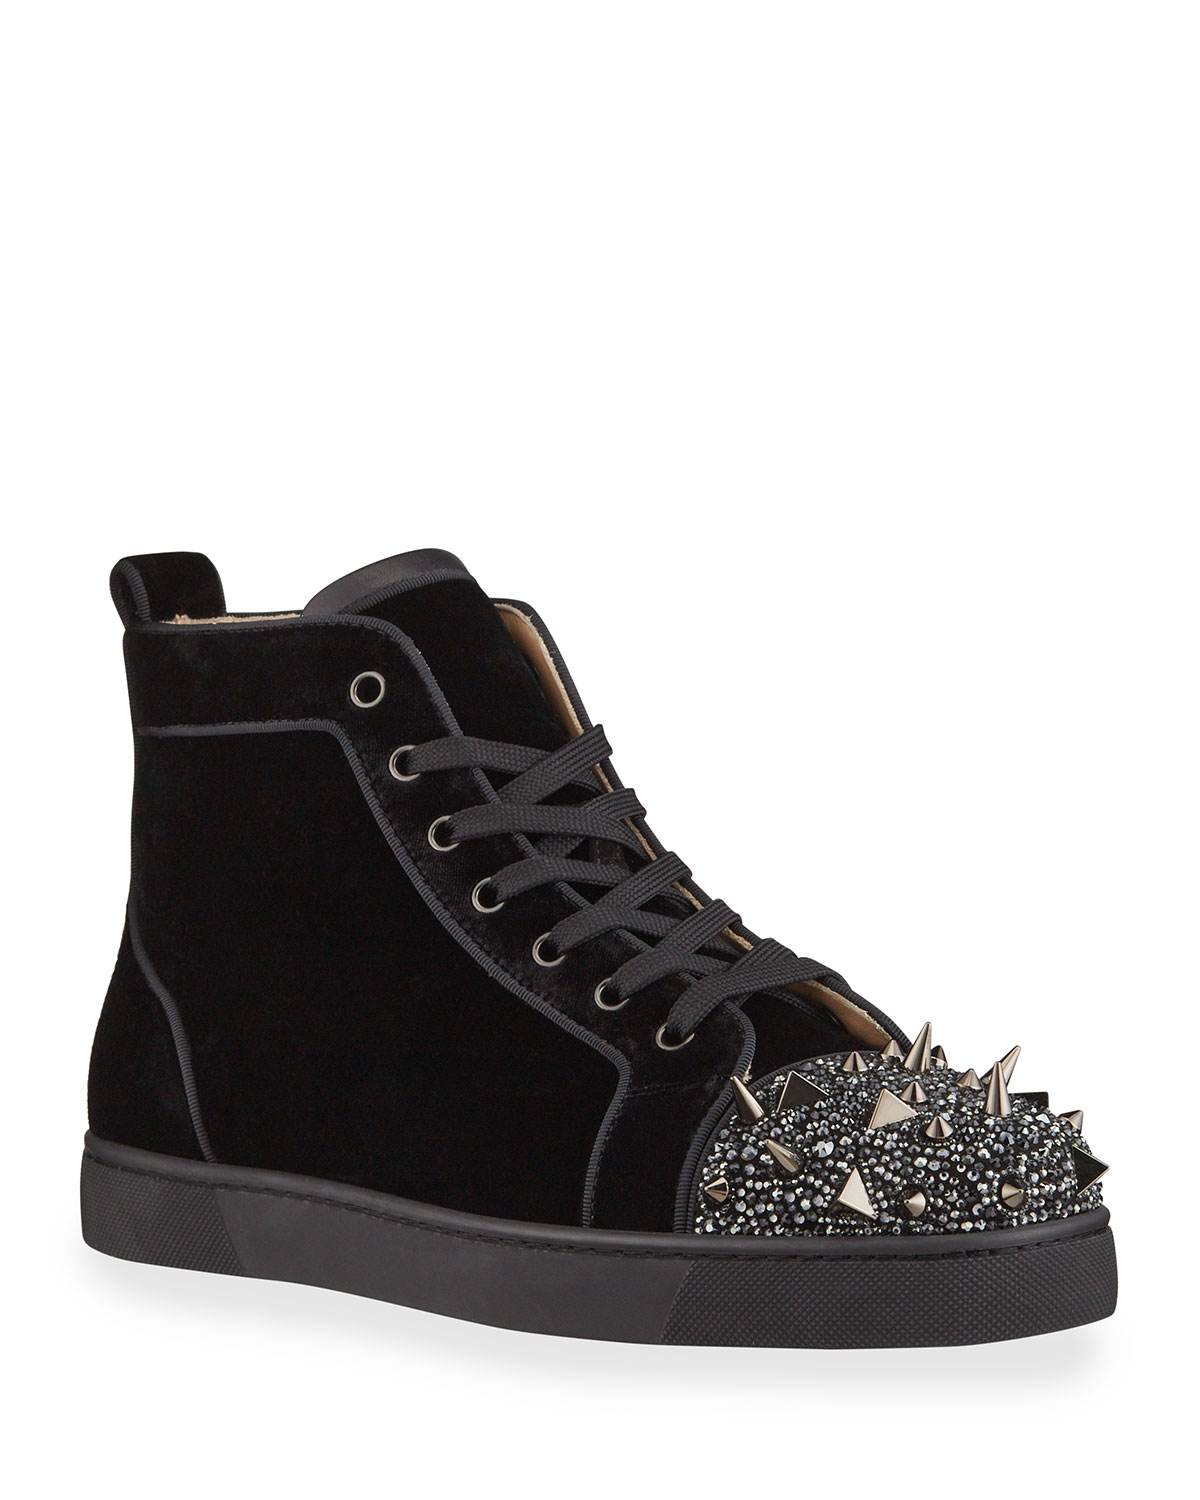 Christian Louboutin Men's Lou Pik Pik Strass Suede High-Top Sneakers